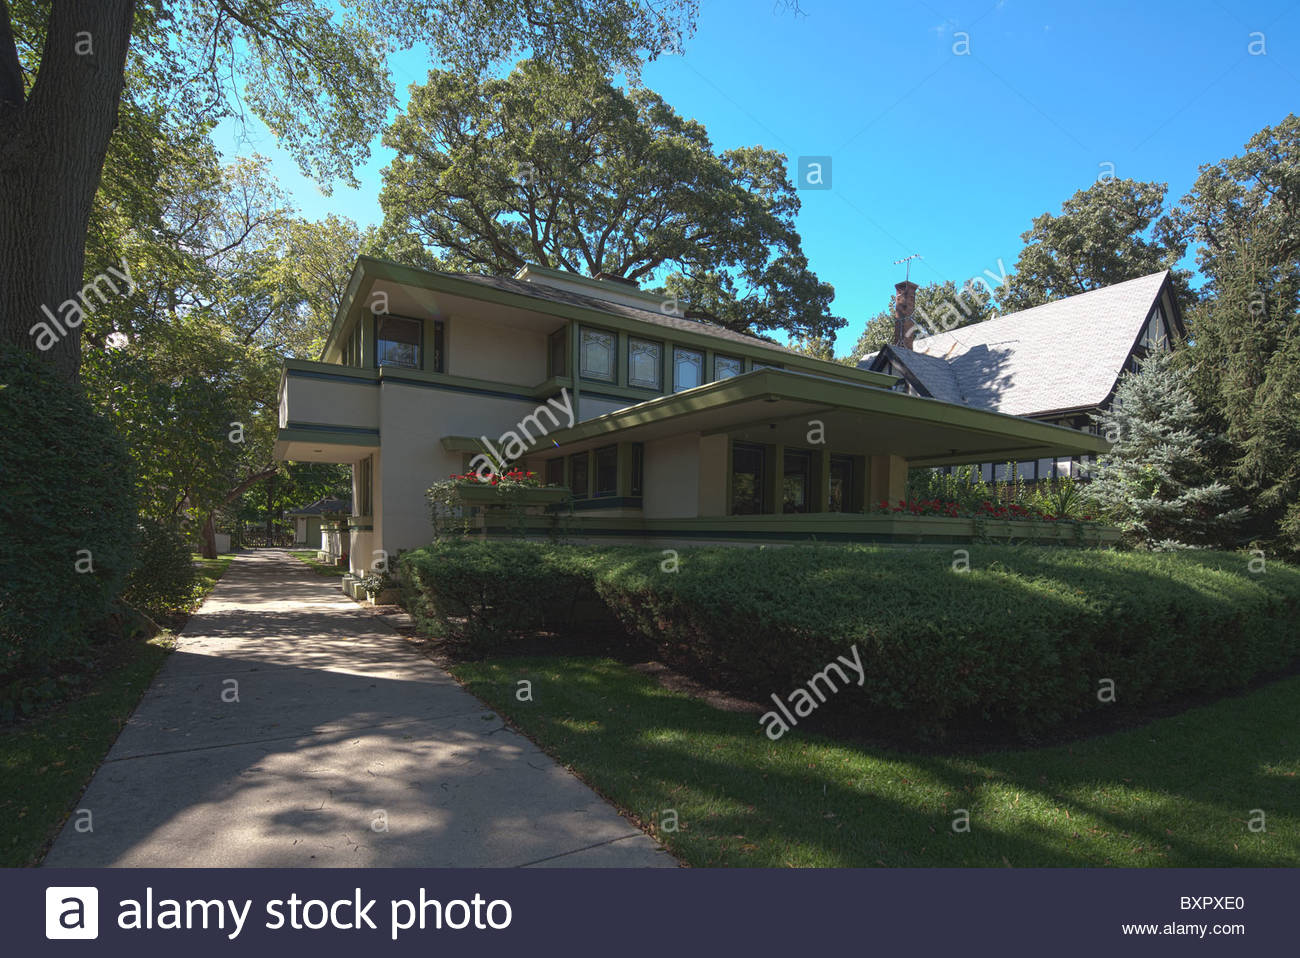 J. Kibben Ingalls house by Frank Lloyd Wright, River Forest, Chicago, Illinois, USA - Stock Image